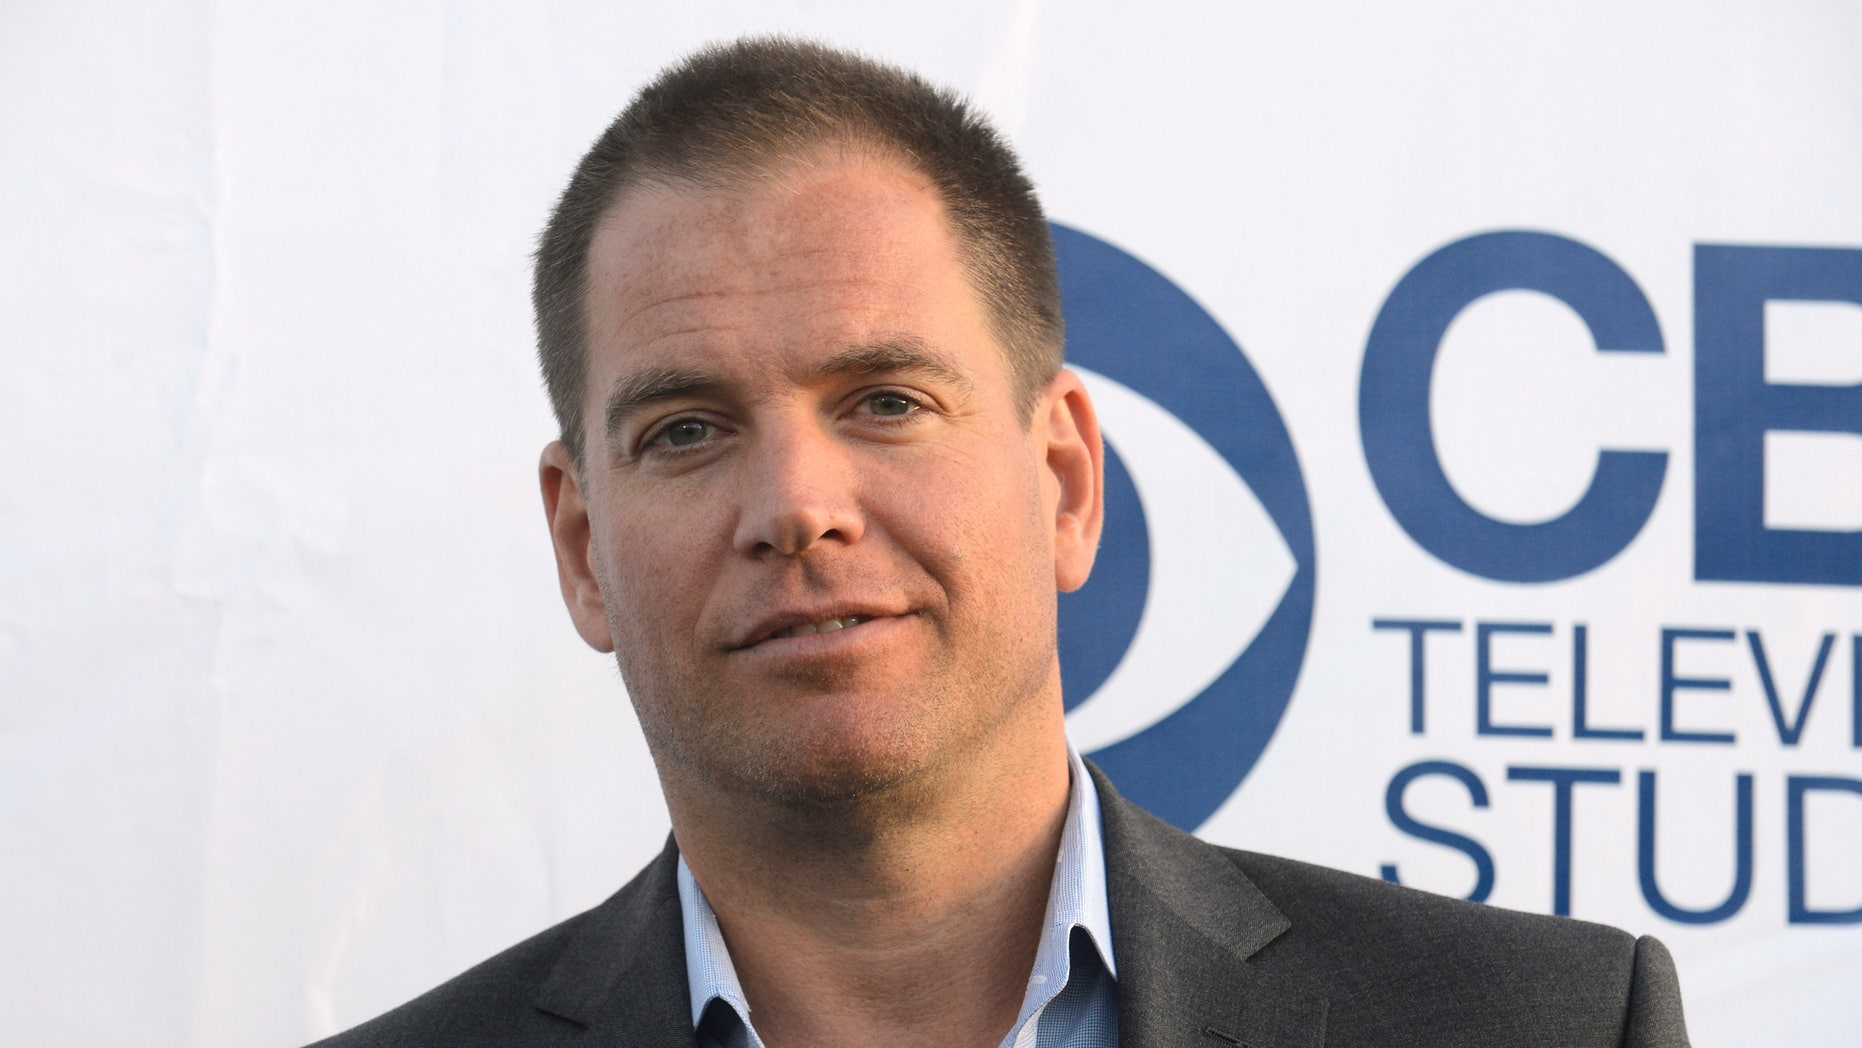 """Michael Weatherly attends the CBS Television Studios """"Summer Soiree"""" in West Hollywood, California May 19, 2014. REUTERS/Phil McCarten (UNITED STATES - Tags: ENTERTAINMENT HEADSHOT) - RTR3PXHJ"""